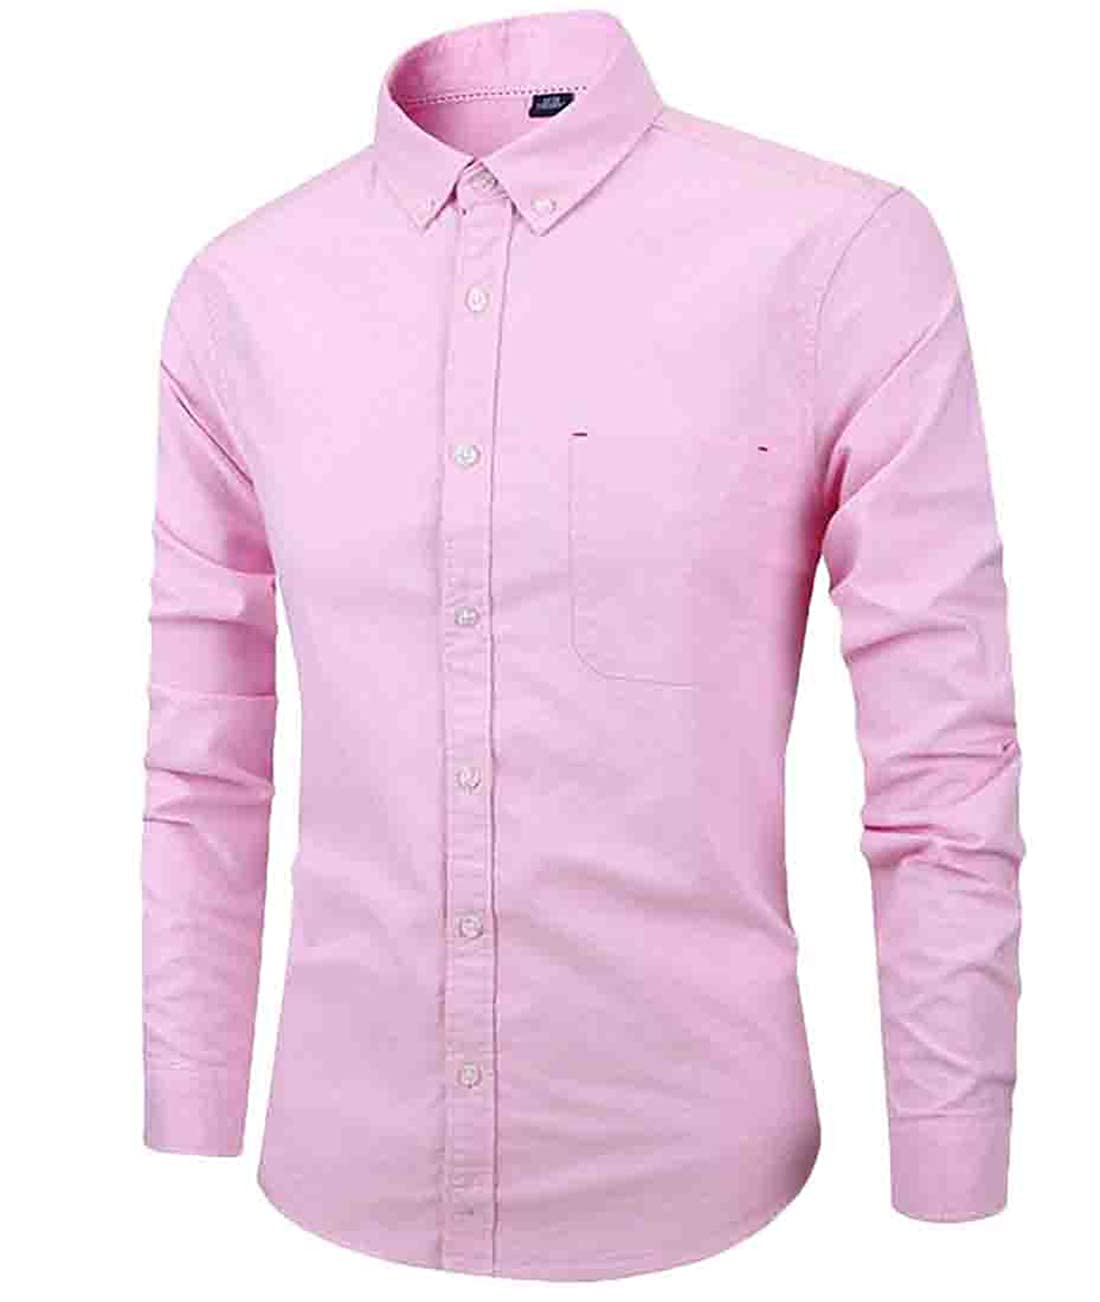 Twcx Mens Cotton Casual Oxford Single Breasted Flap Pockets Solid Color Skinny Shirt